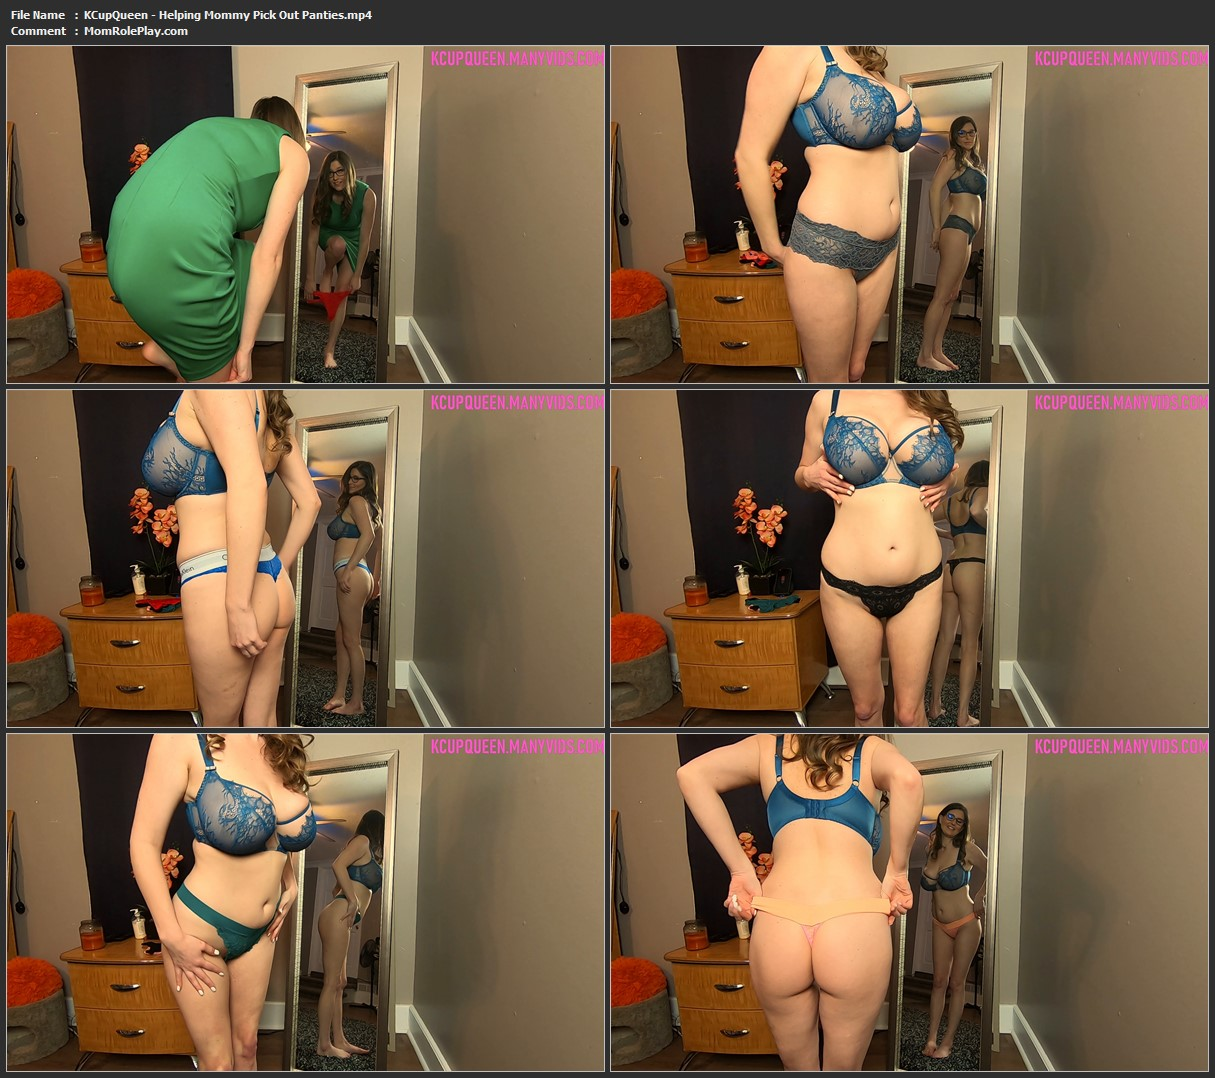 KCupQueen - Helping Mommy Pick Out Panties